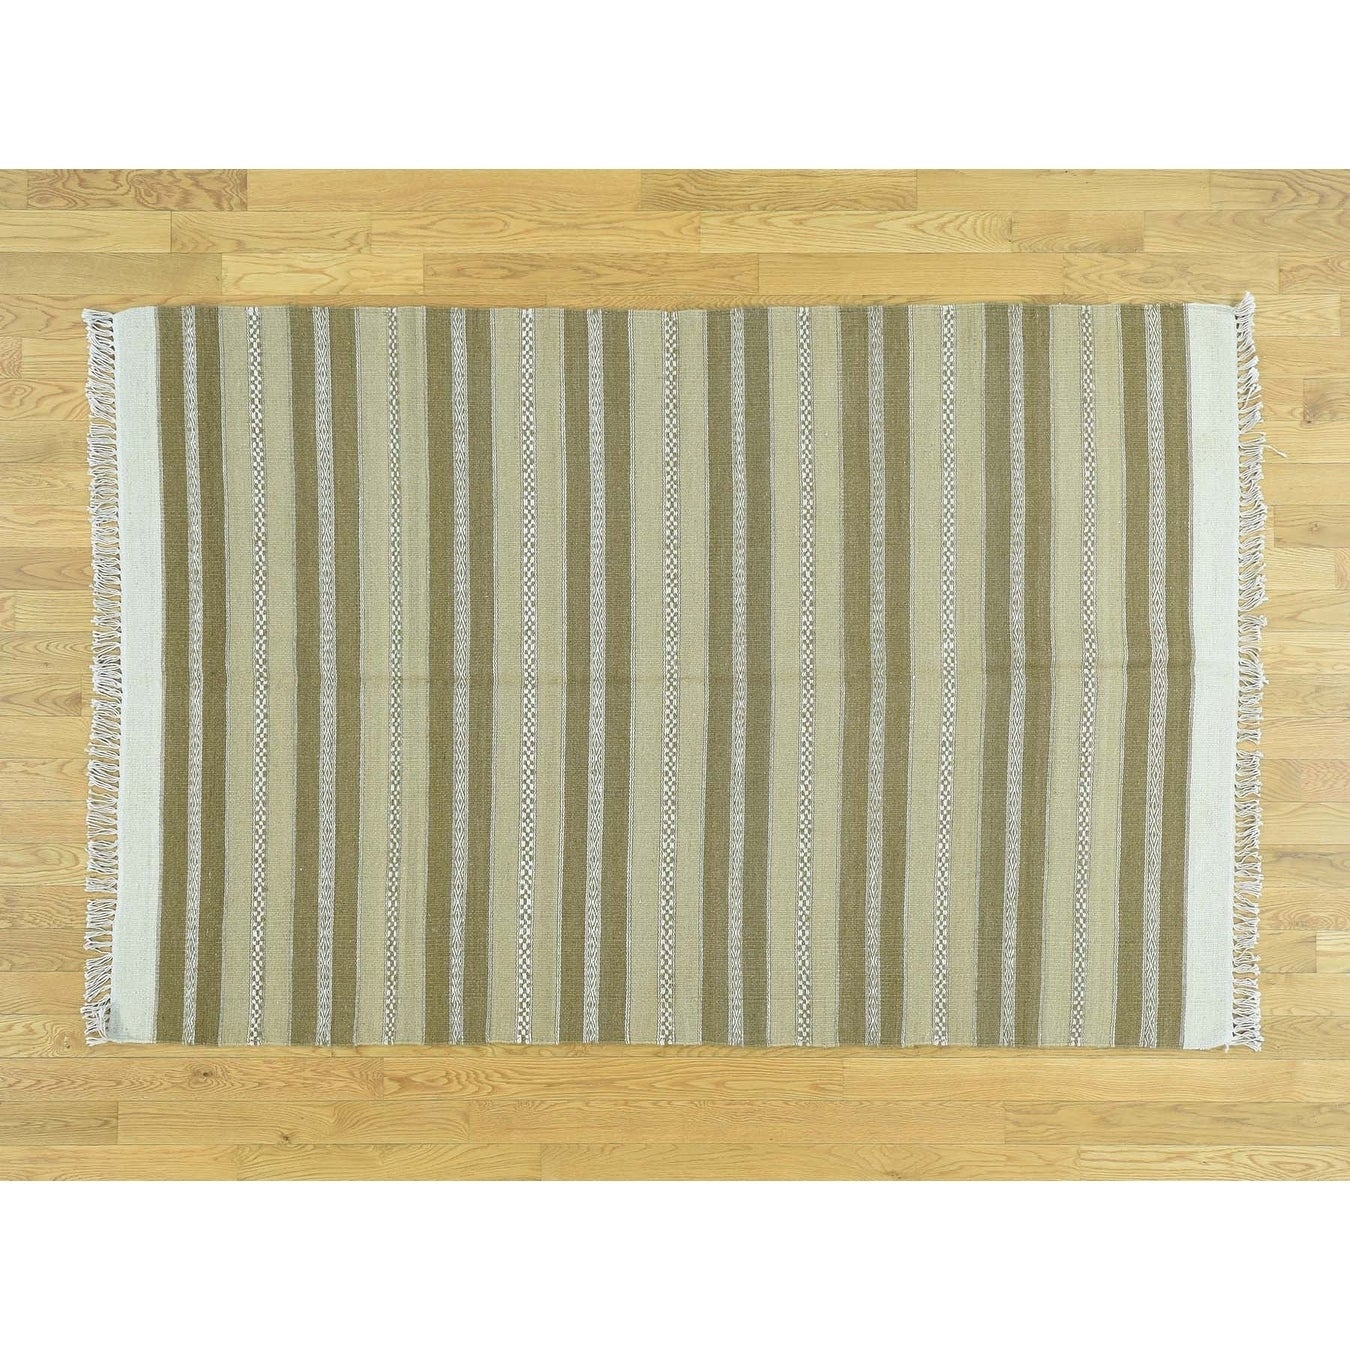 Hand Knotted Beige Flat Weave with Wool Oriental Rug - 49 x 73